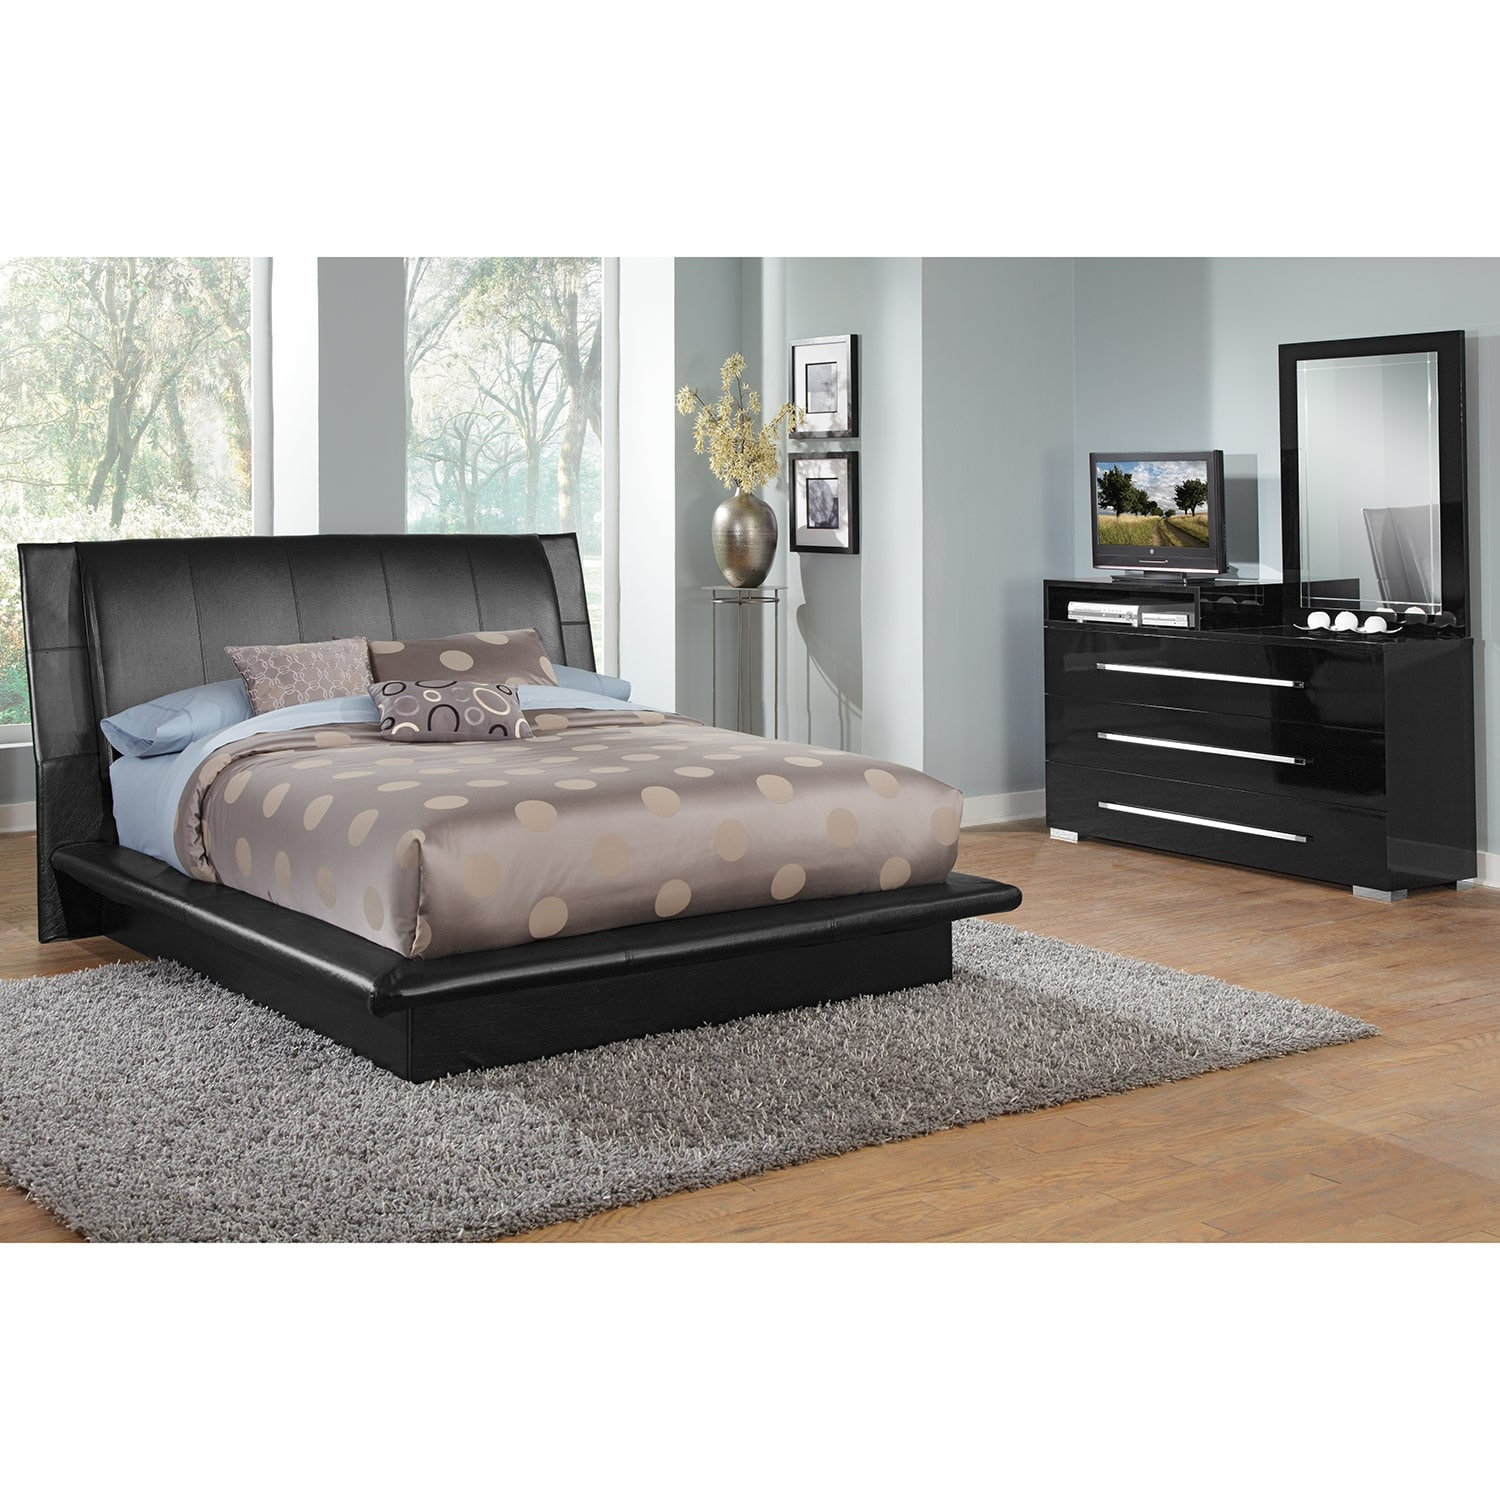 Dimora 5-Piece Queen Upholstered Bedroom Set with Media Dresser - Black